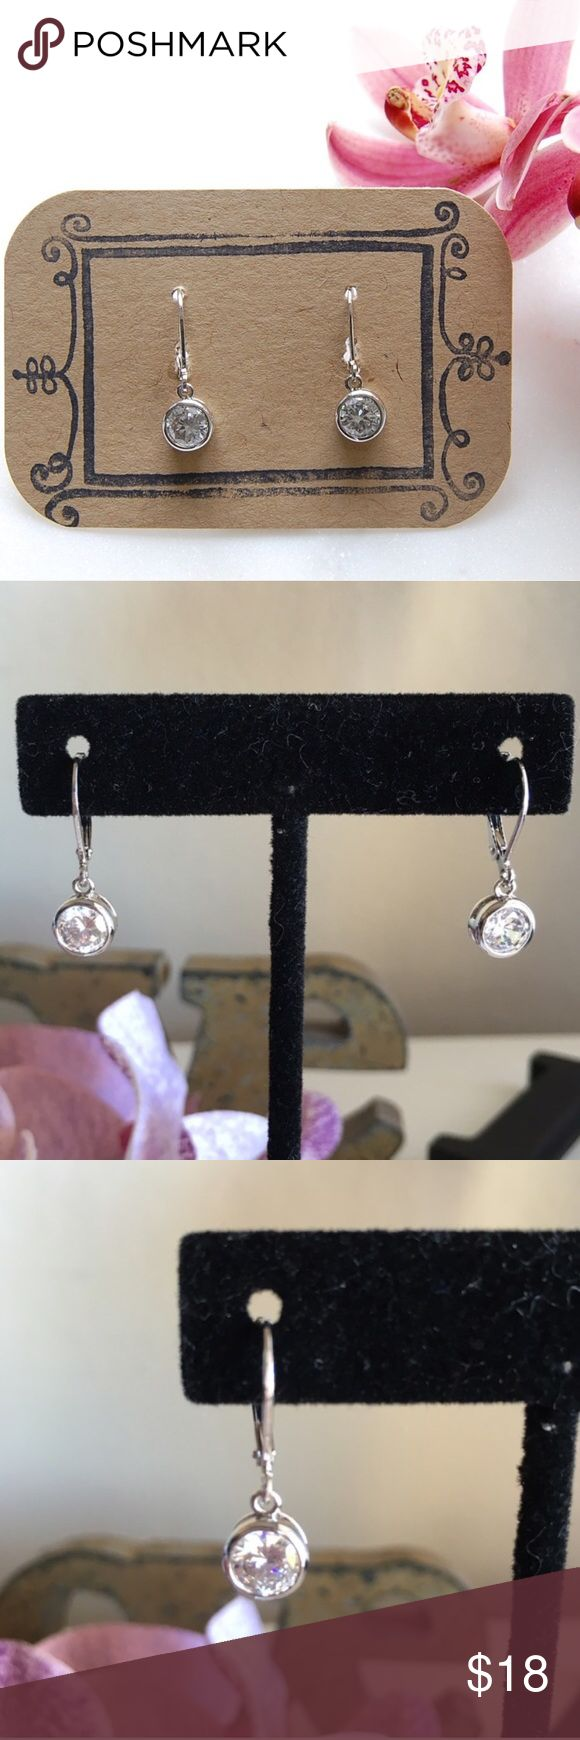 BOGO 50% OFF! Dangling CZ Earrings | Bezel Setting Simple and classic cubic zirconia earrings in a bezel setting. 1 karat CZs hang almost an inch long. Includes box. Price firm unless bundled. {E3312}   Instagram: @bringingupsuns Jewelry Earrings